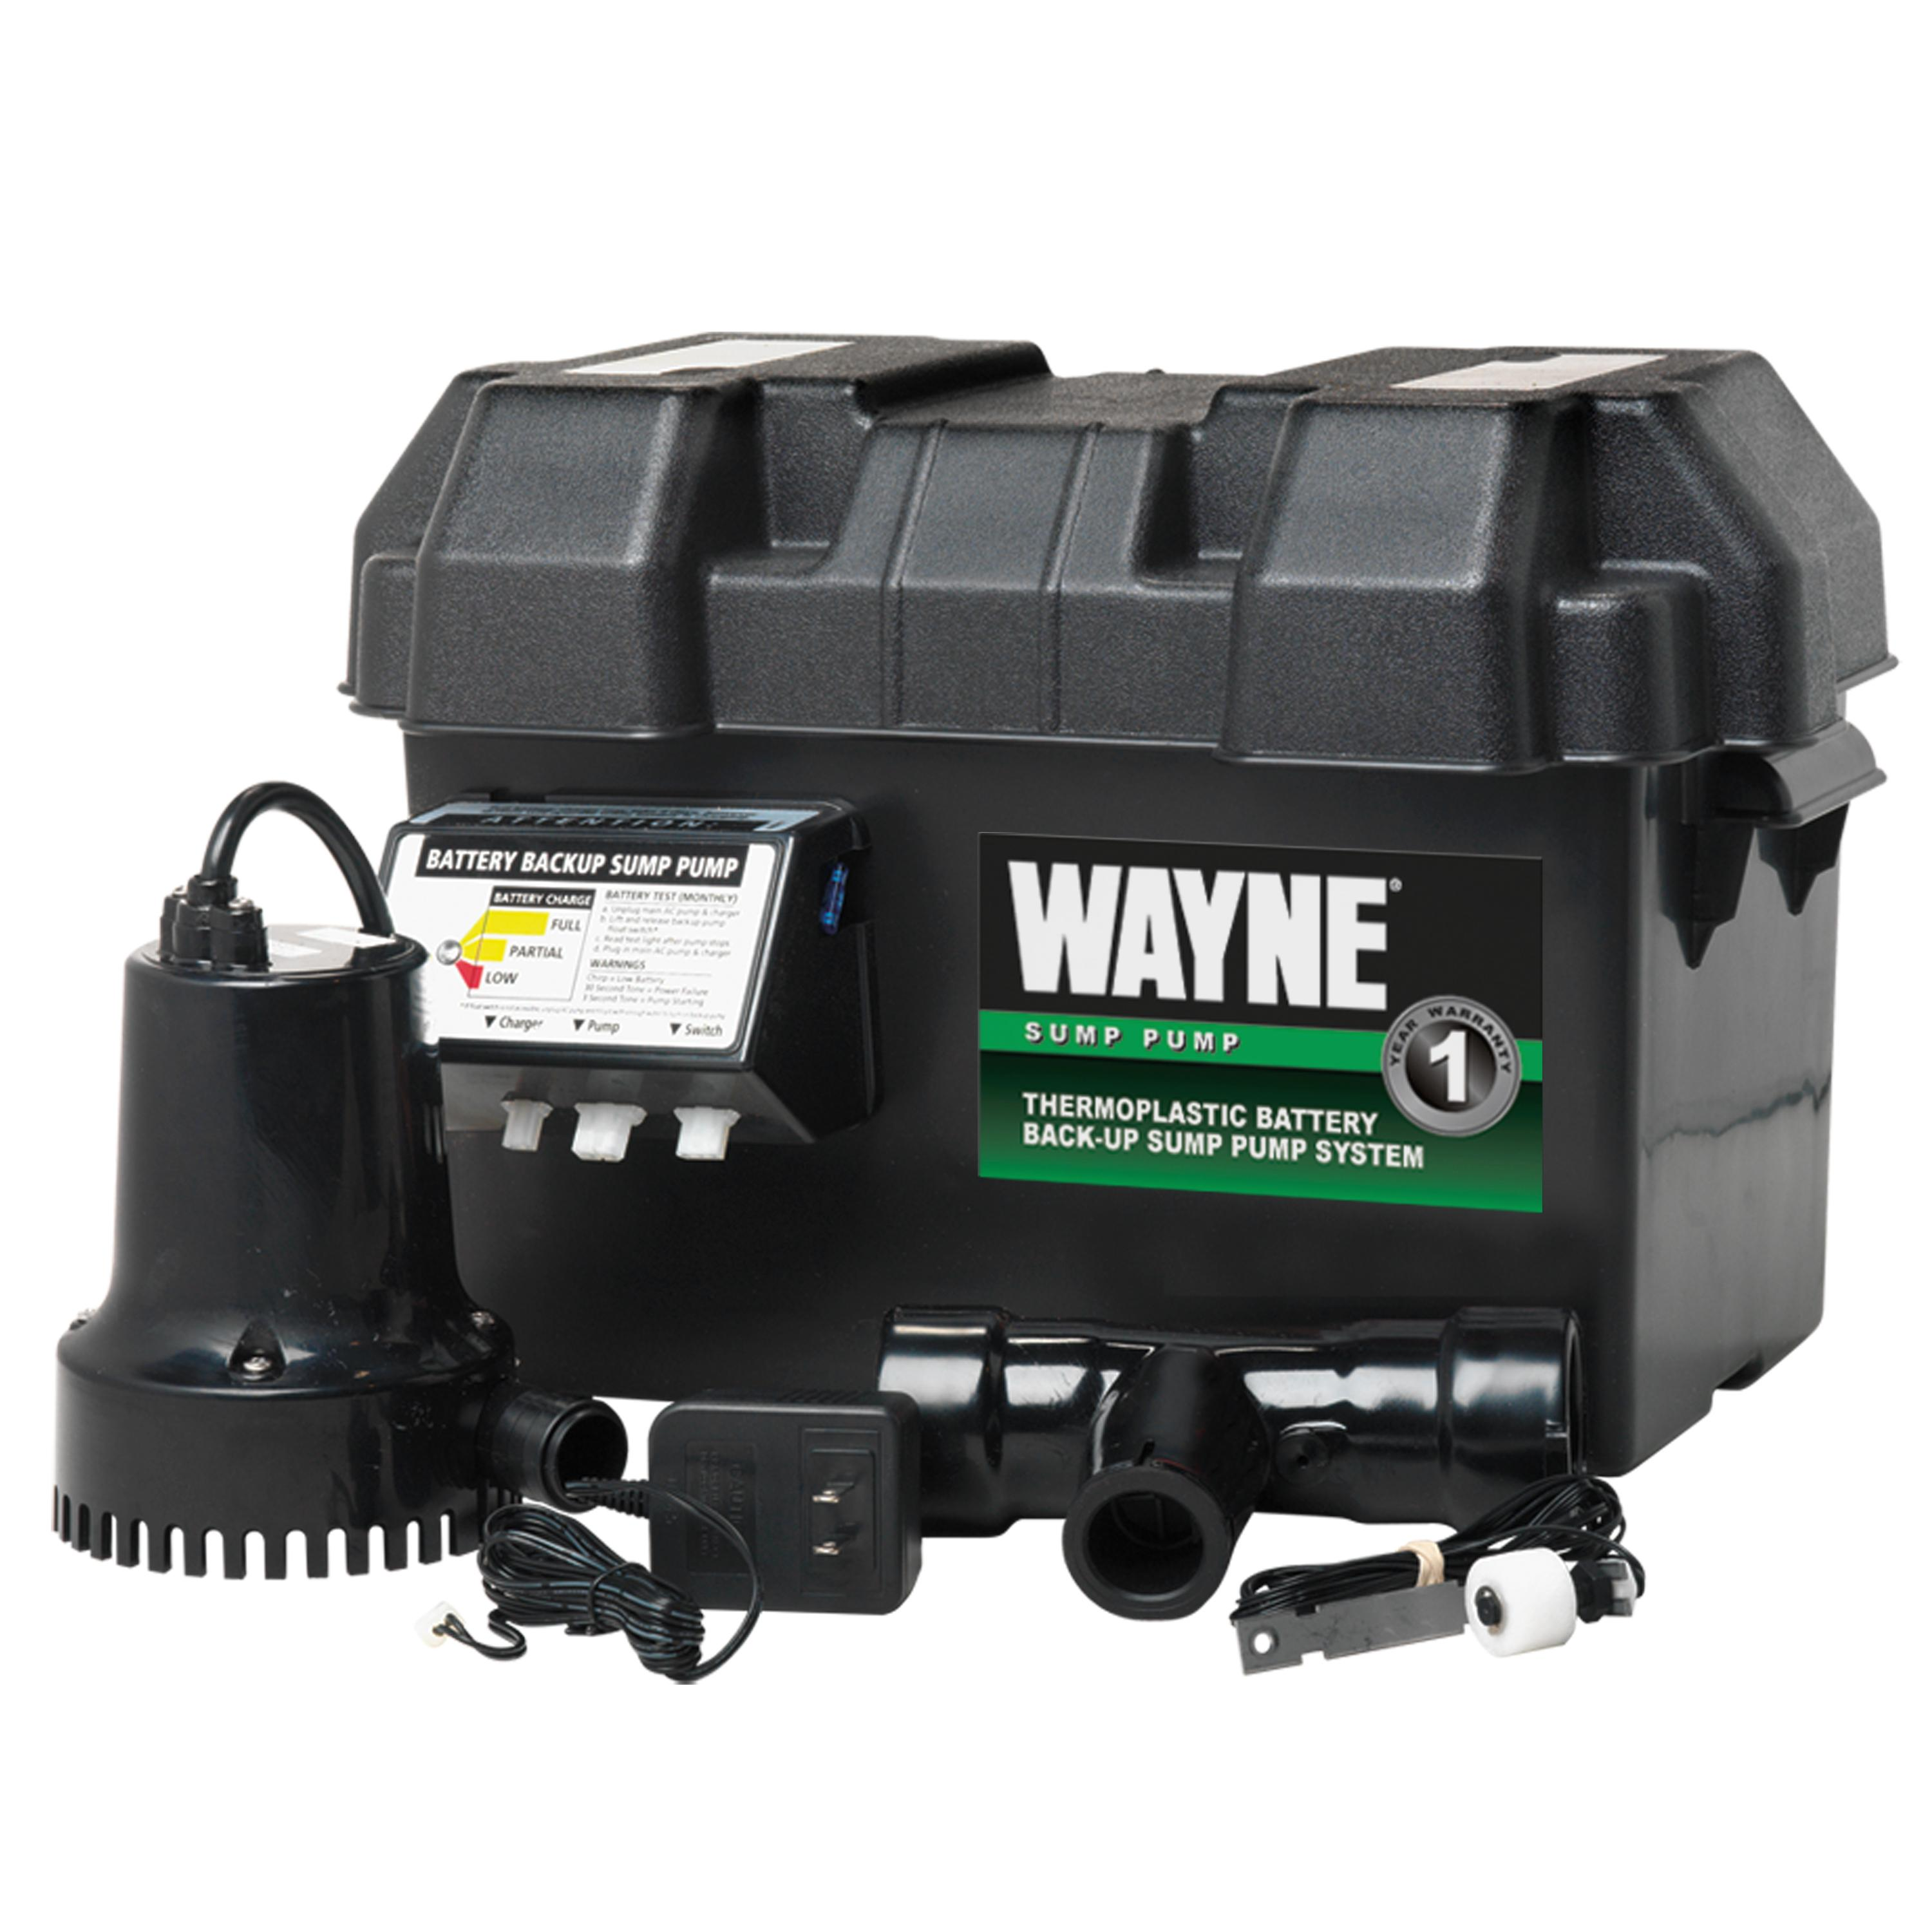 Wayne Esp15 Battery Back Up 12 Volt Sump Pump System Circuit For Backup Standby Operation View Larger